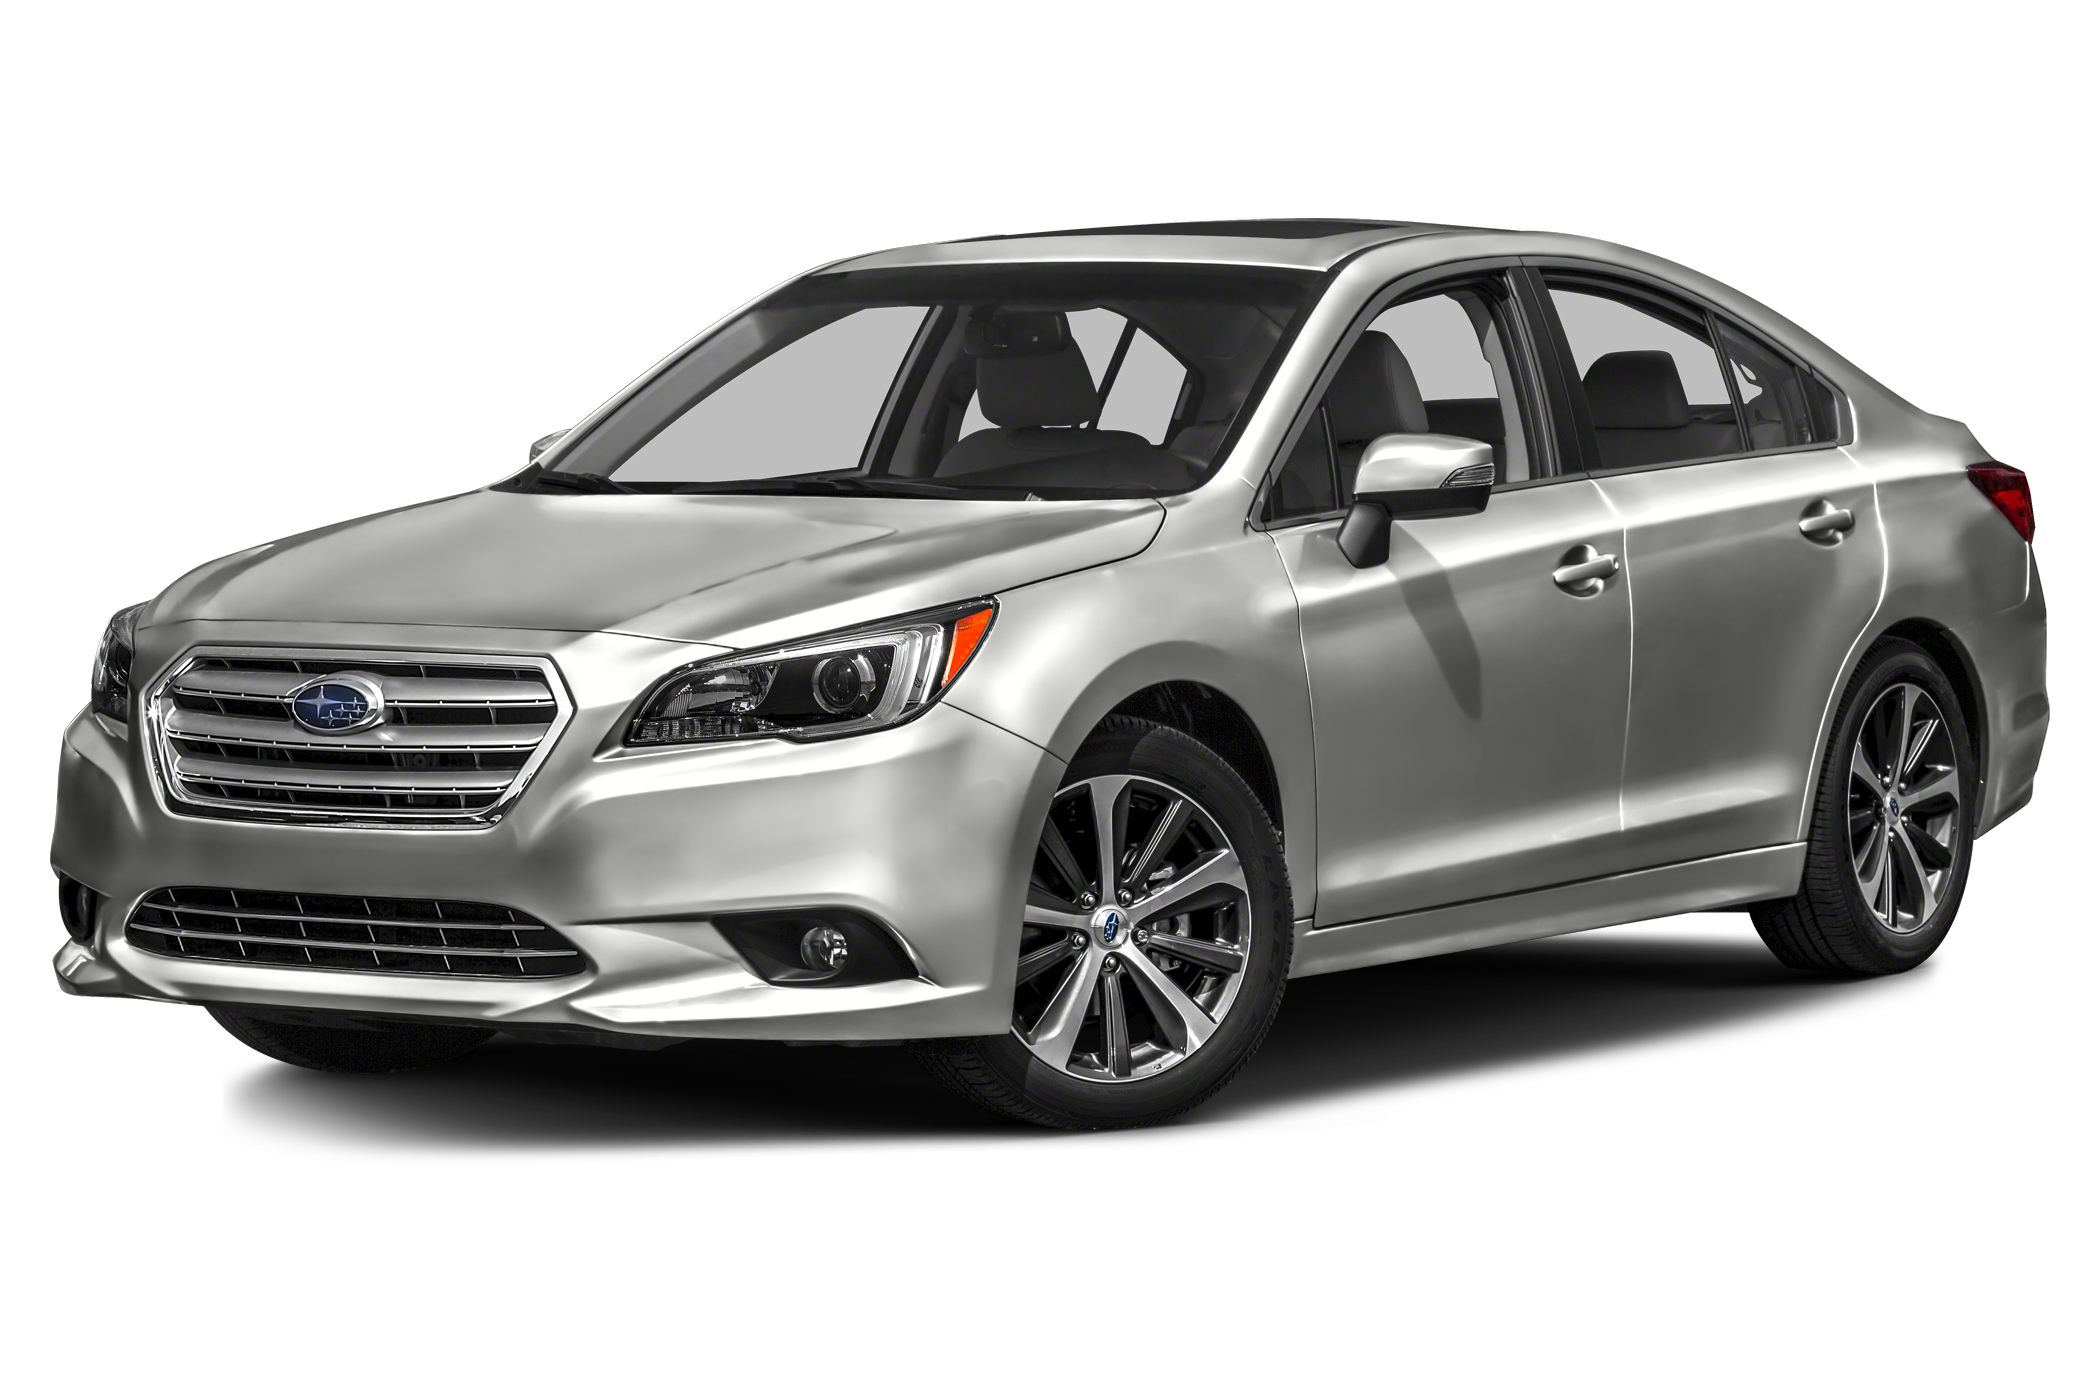 2015 Subaru Legacy 2.5i Premium Sedan for sale in North Charleston for $25,042 with 0 miles.